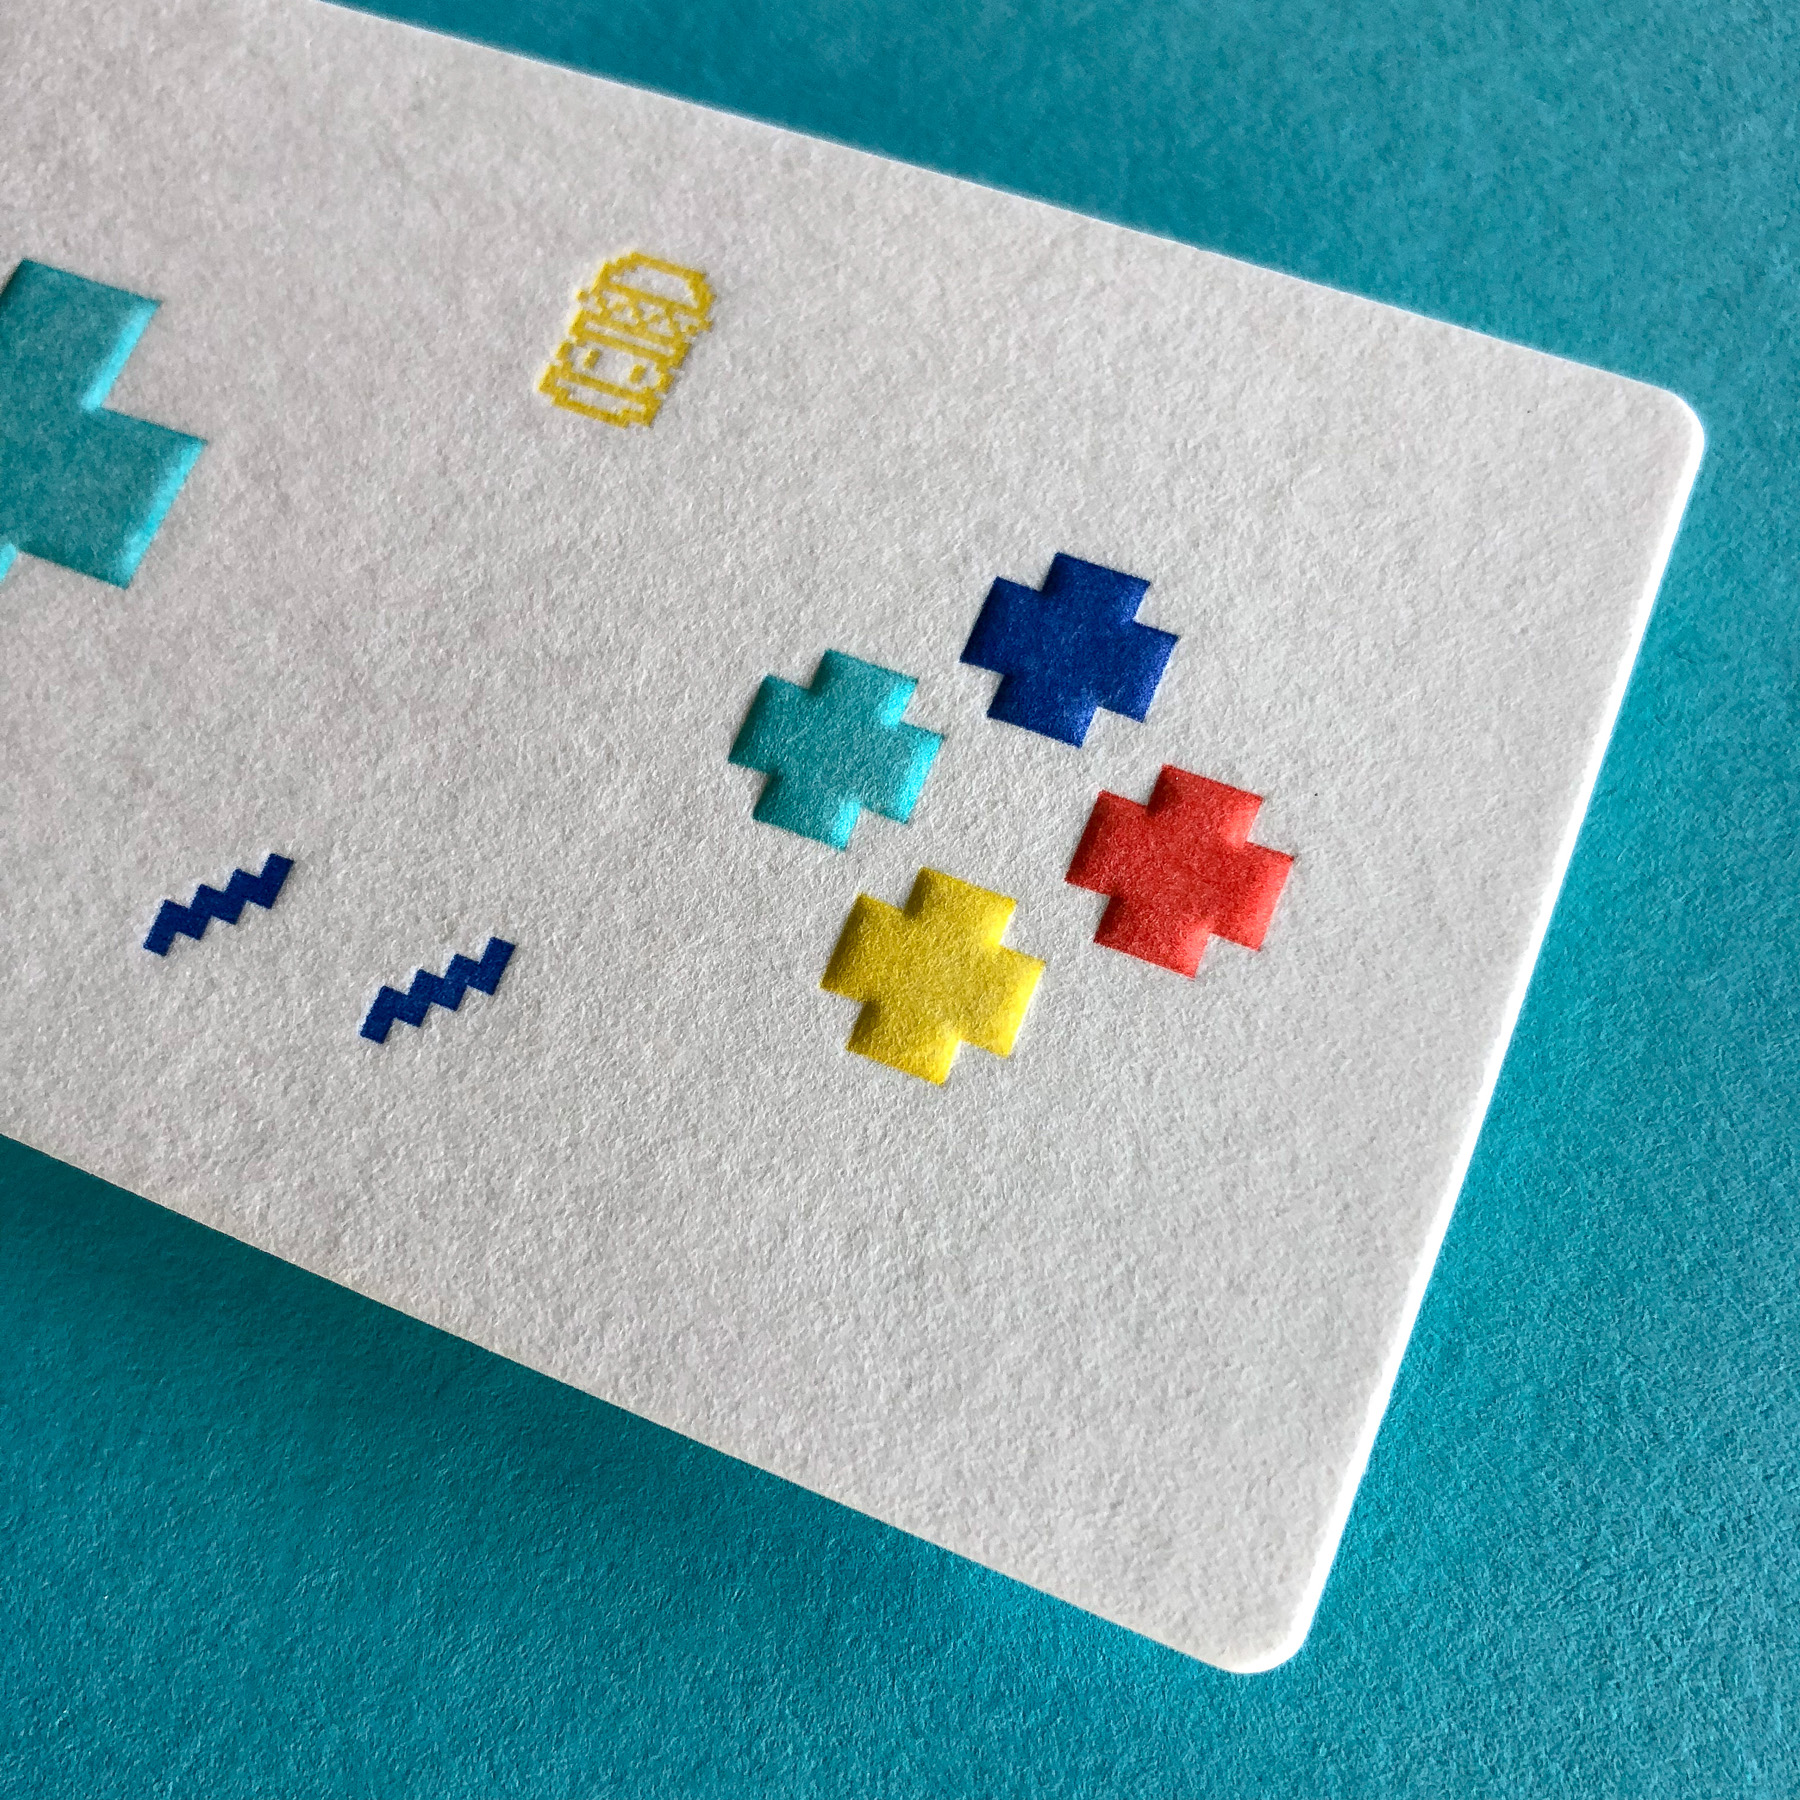 Unique letterpress embossed business cards for 8 Bit Burger on Wild 3